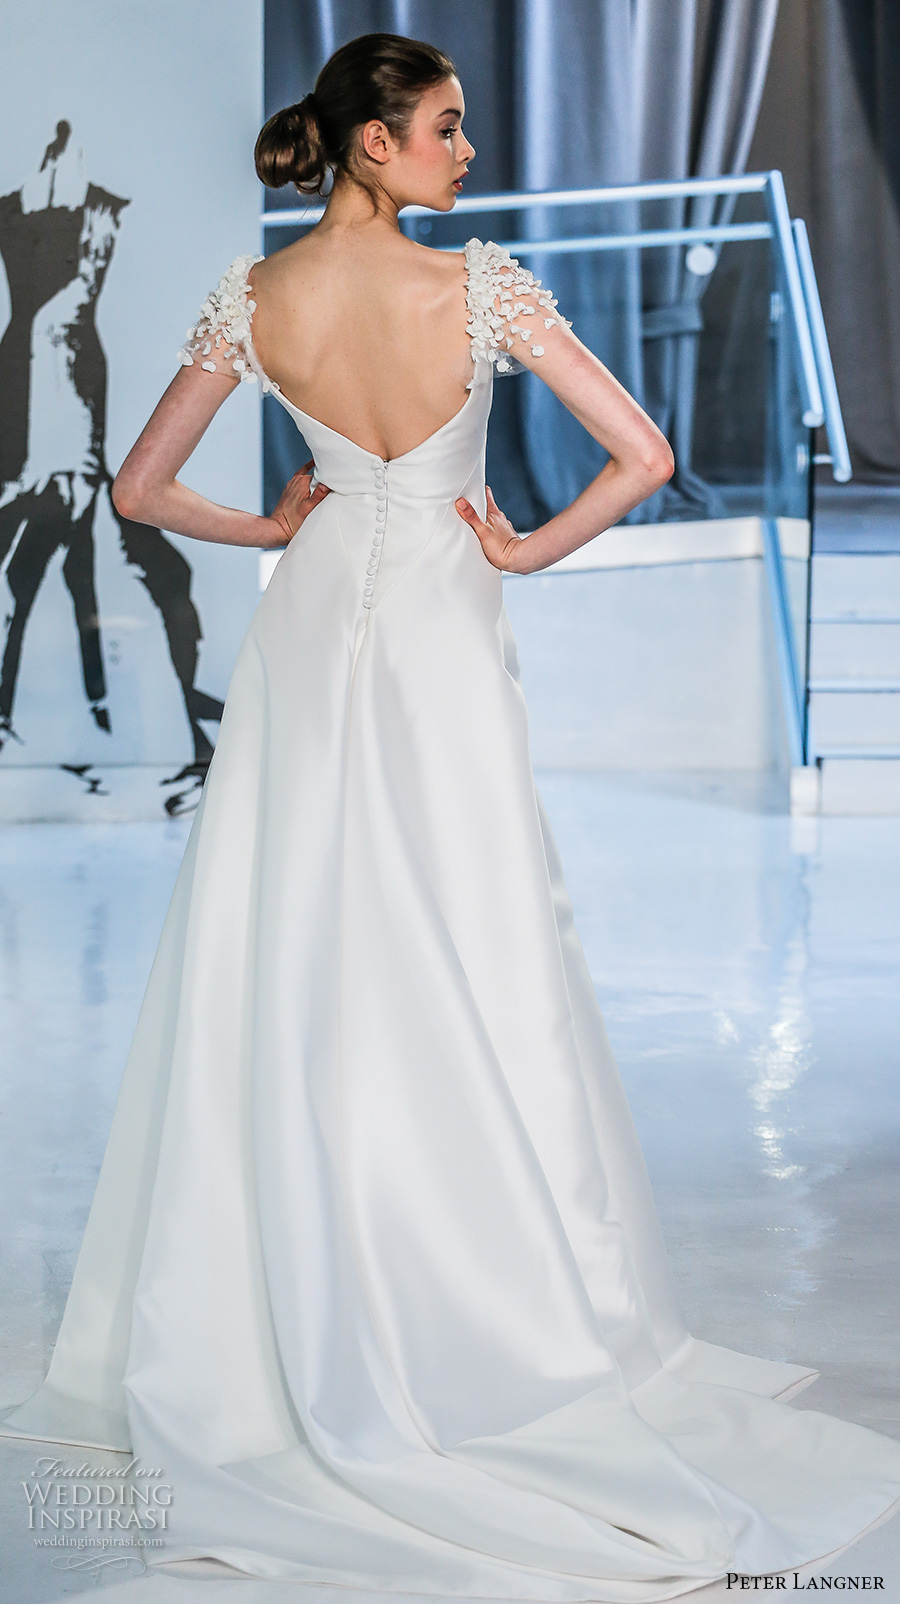 peter langner spring 2018 bridal puff sleeves straight across neckline simple clean elegant sheath wedding dress open v back chapel train (15) bv